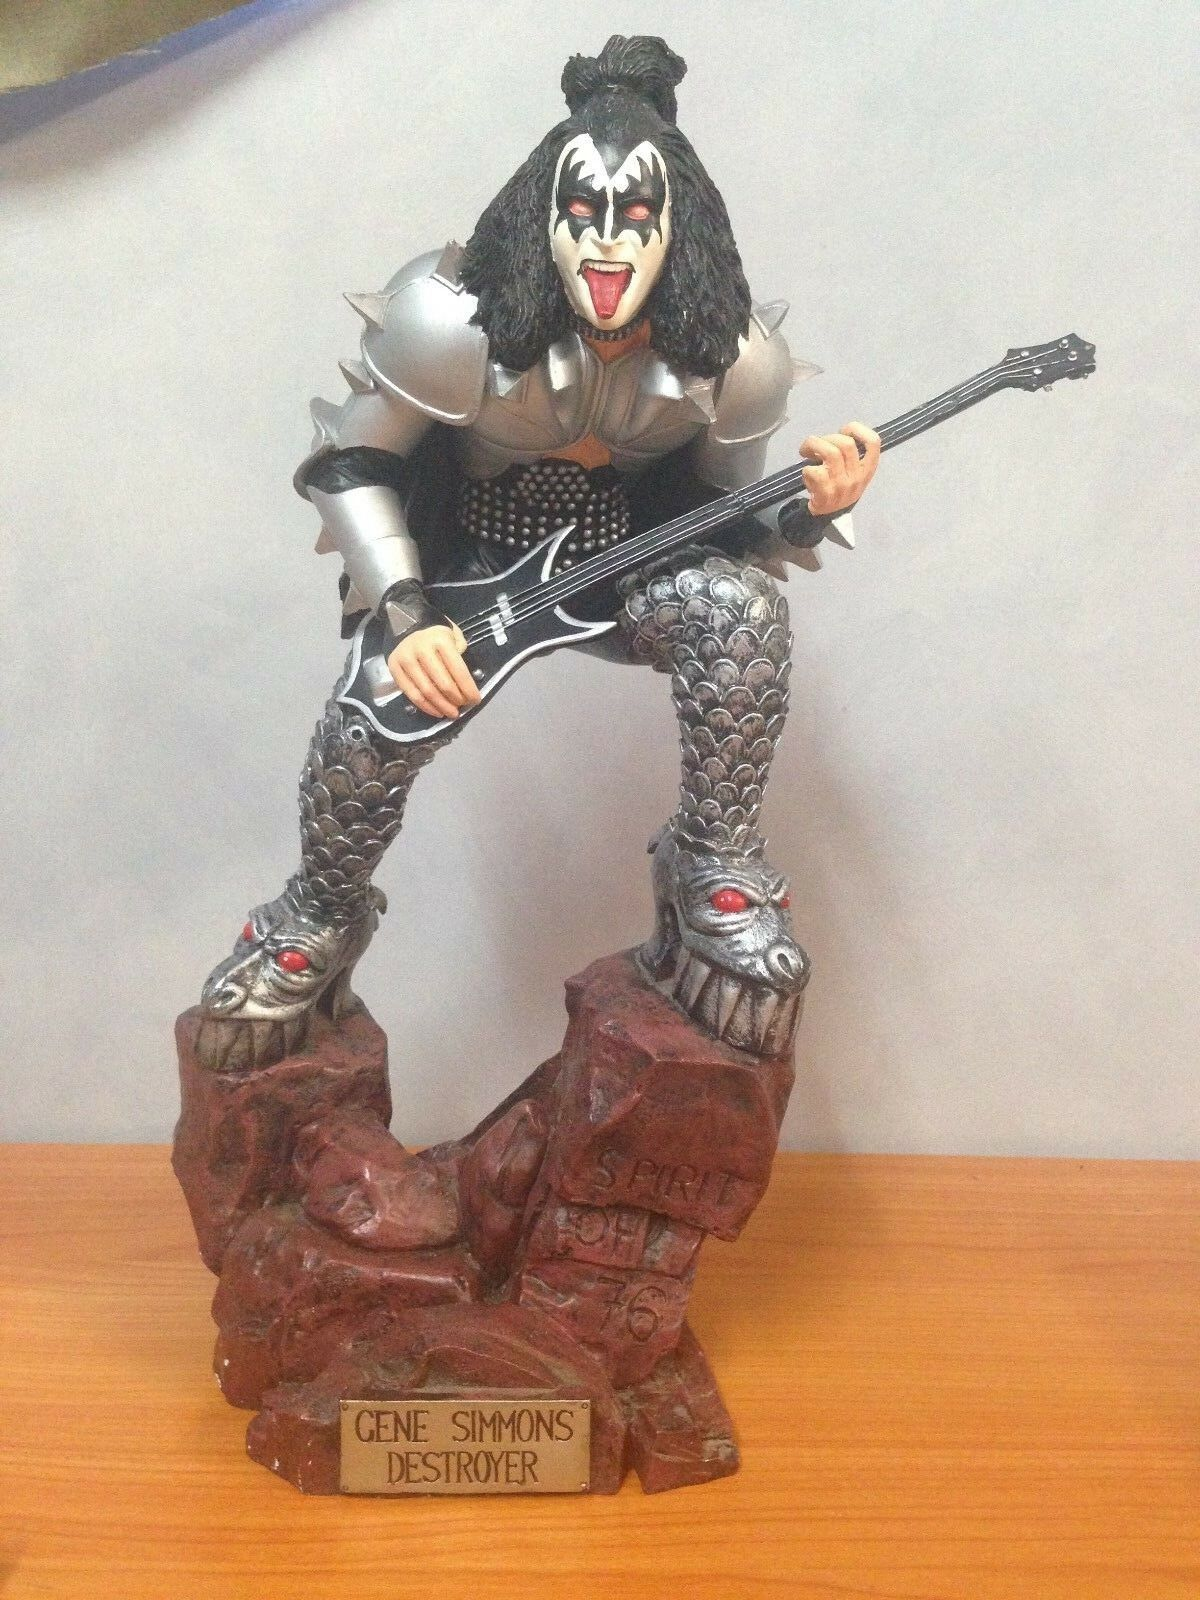 Kiss - Gene Simmons Destroyer - Spirit of 76